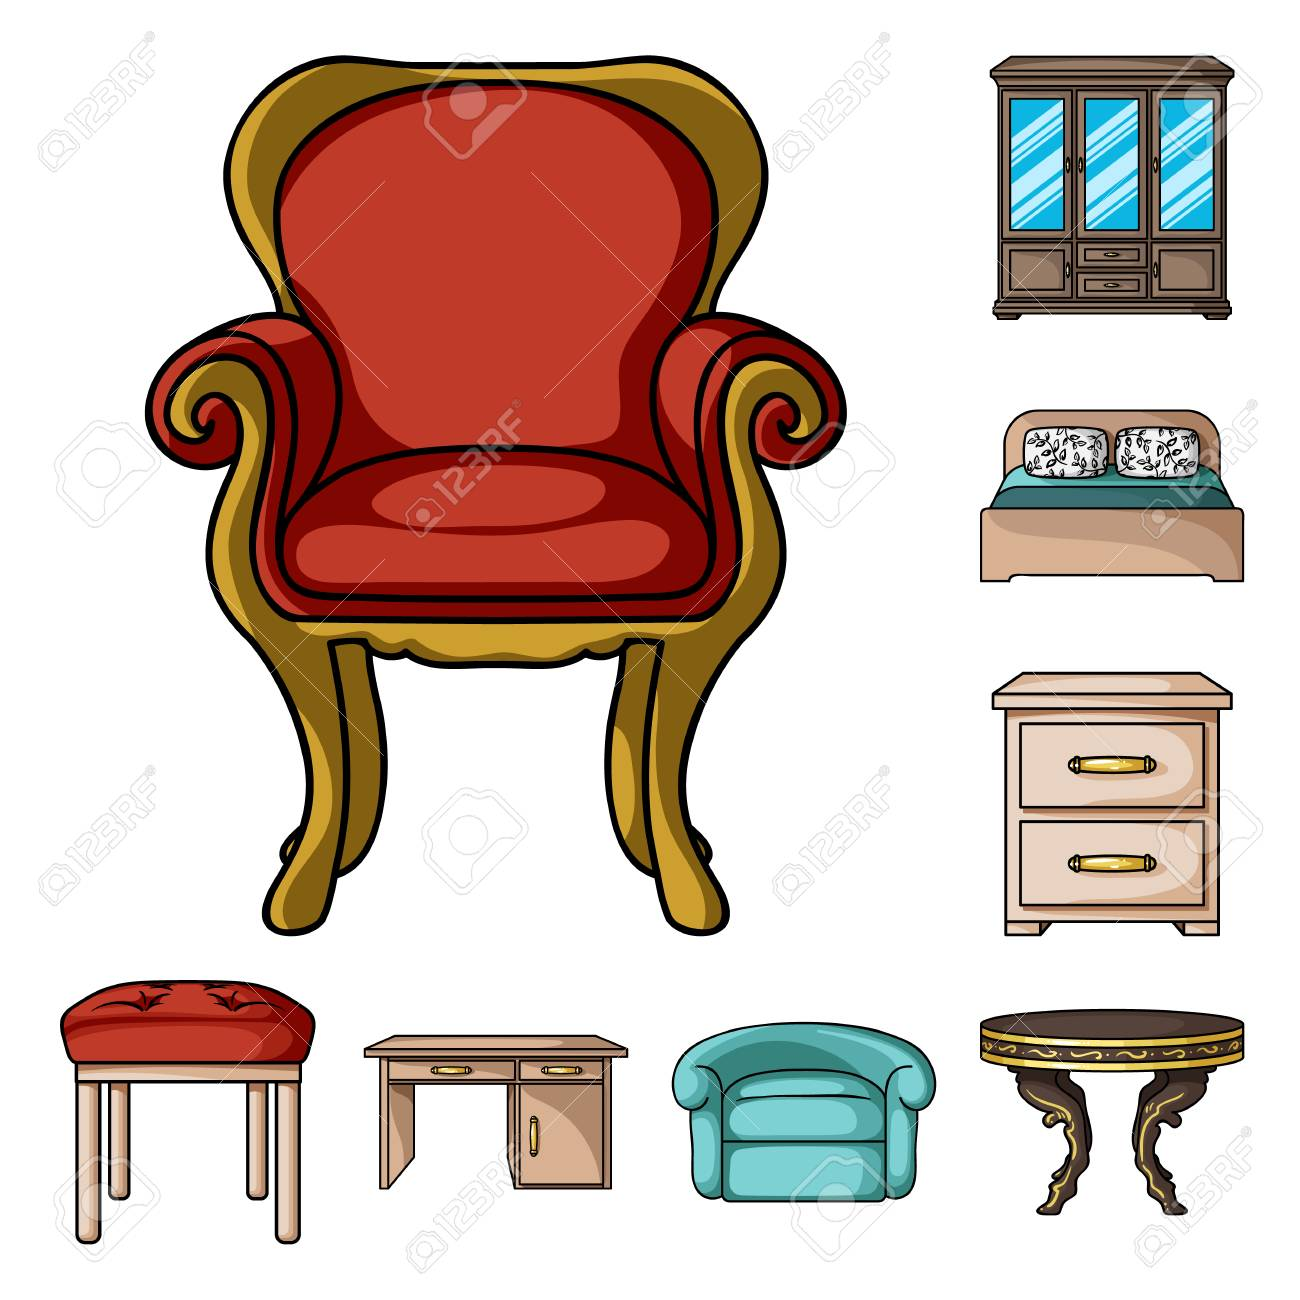 Furniture and interior cartoon icons in set collection for design.Home furniture vector symbol stock illustration. - 107337924